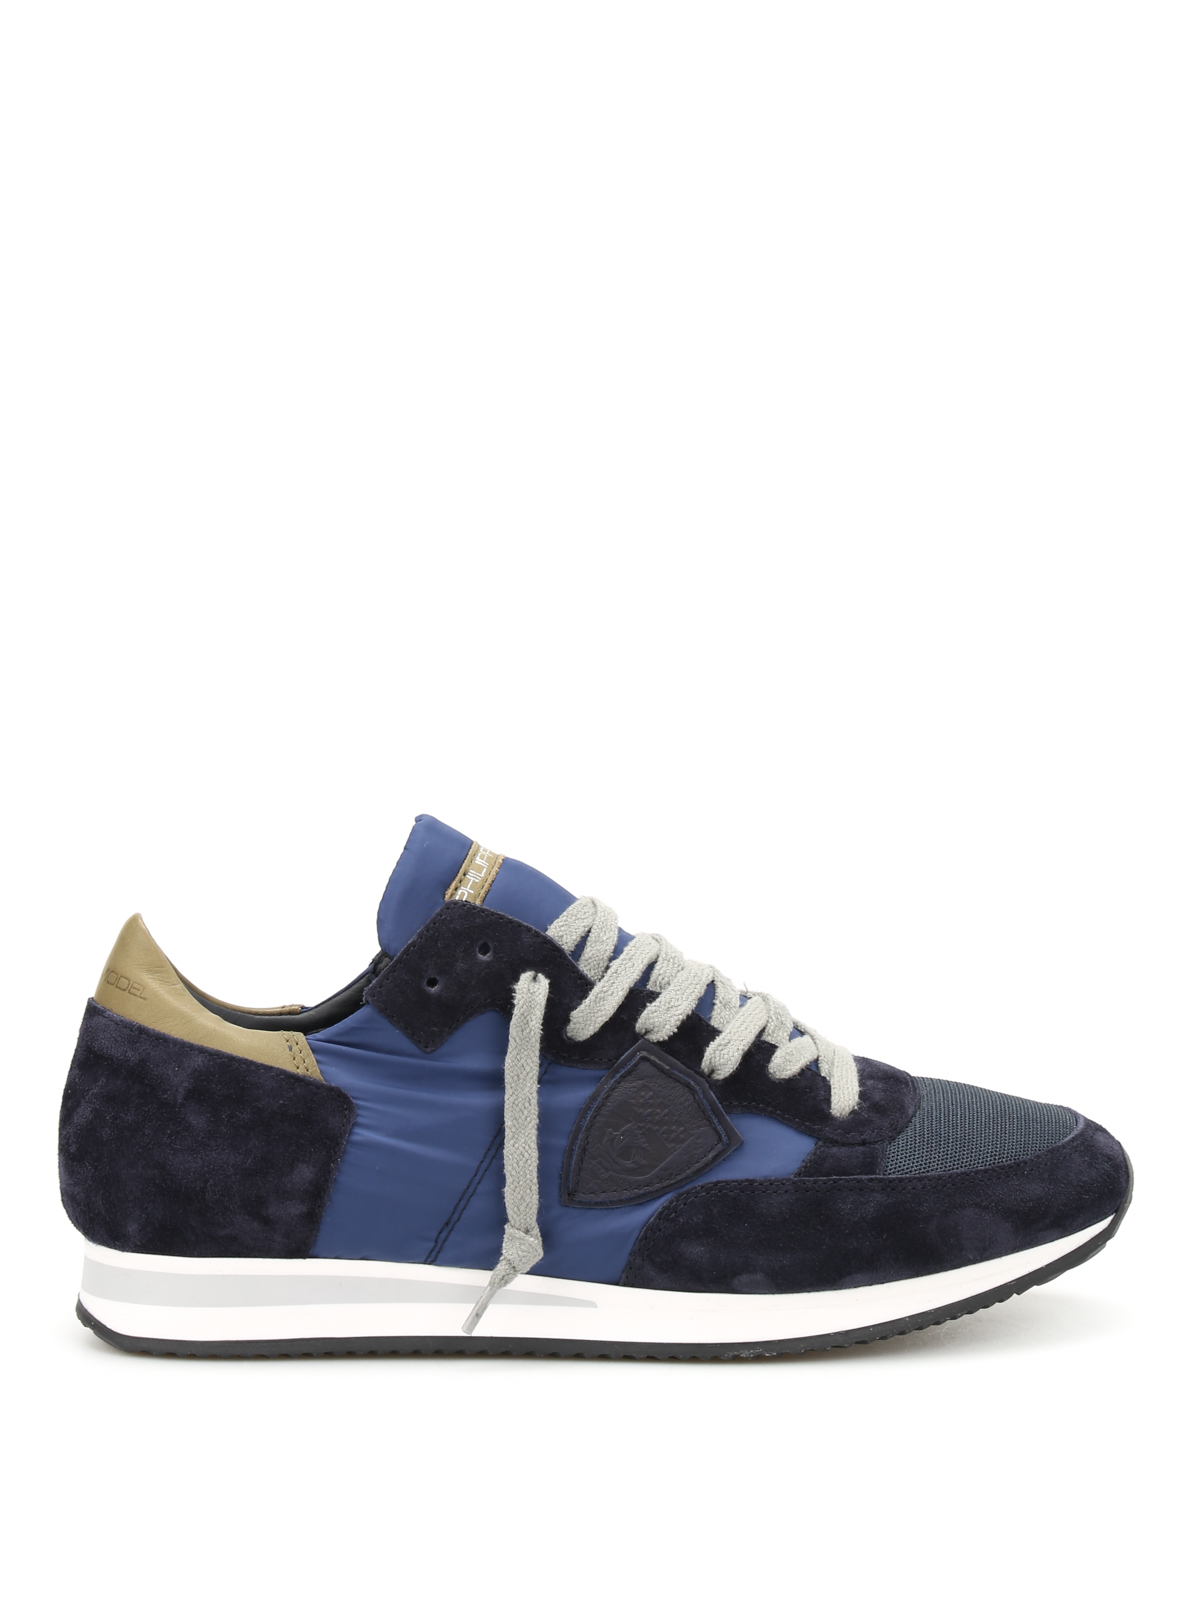 tropez sneakers by philippe model trainers ikrix. Black Bedroom Furniture Sets. Home Design Ideas